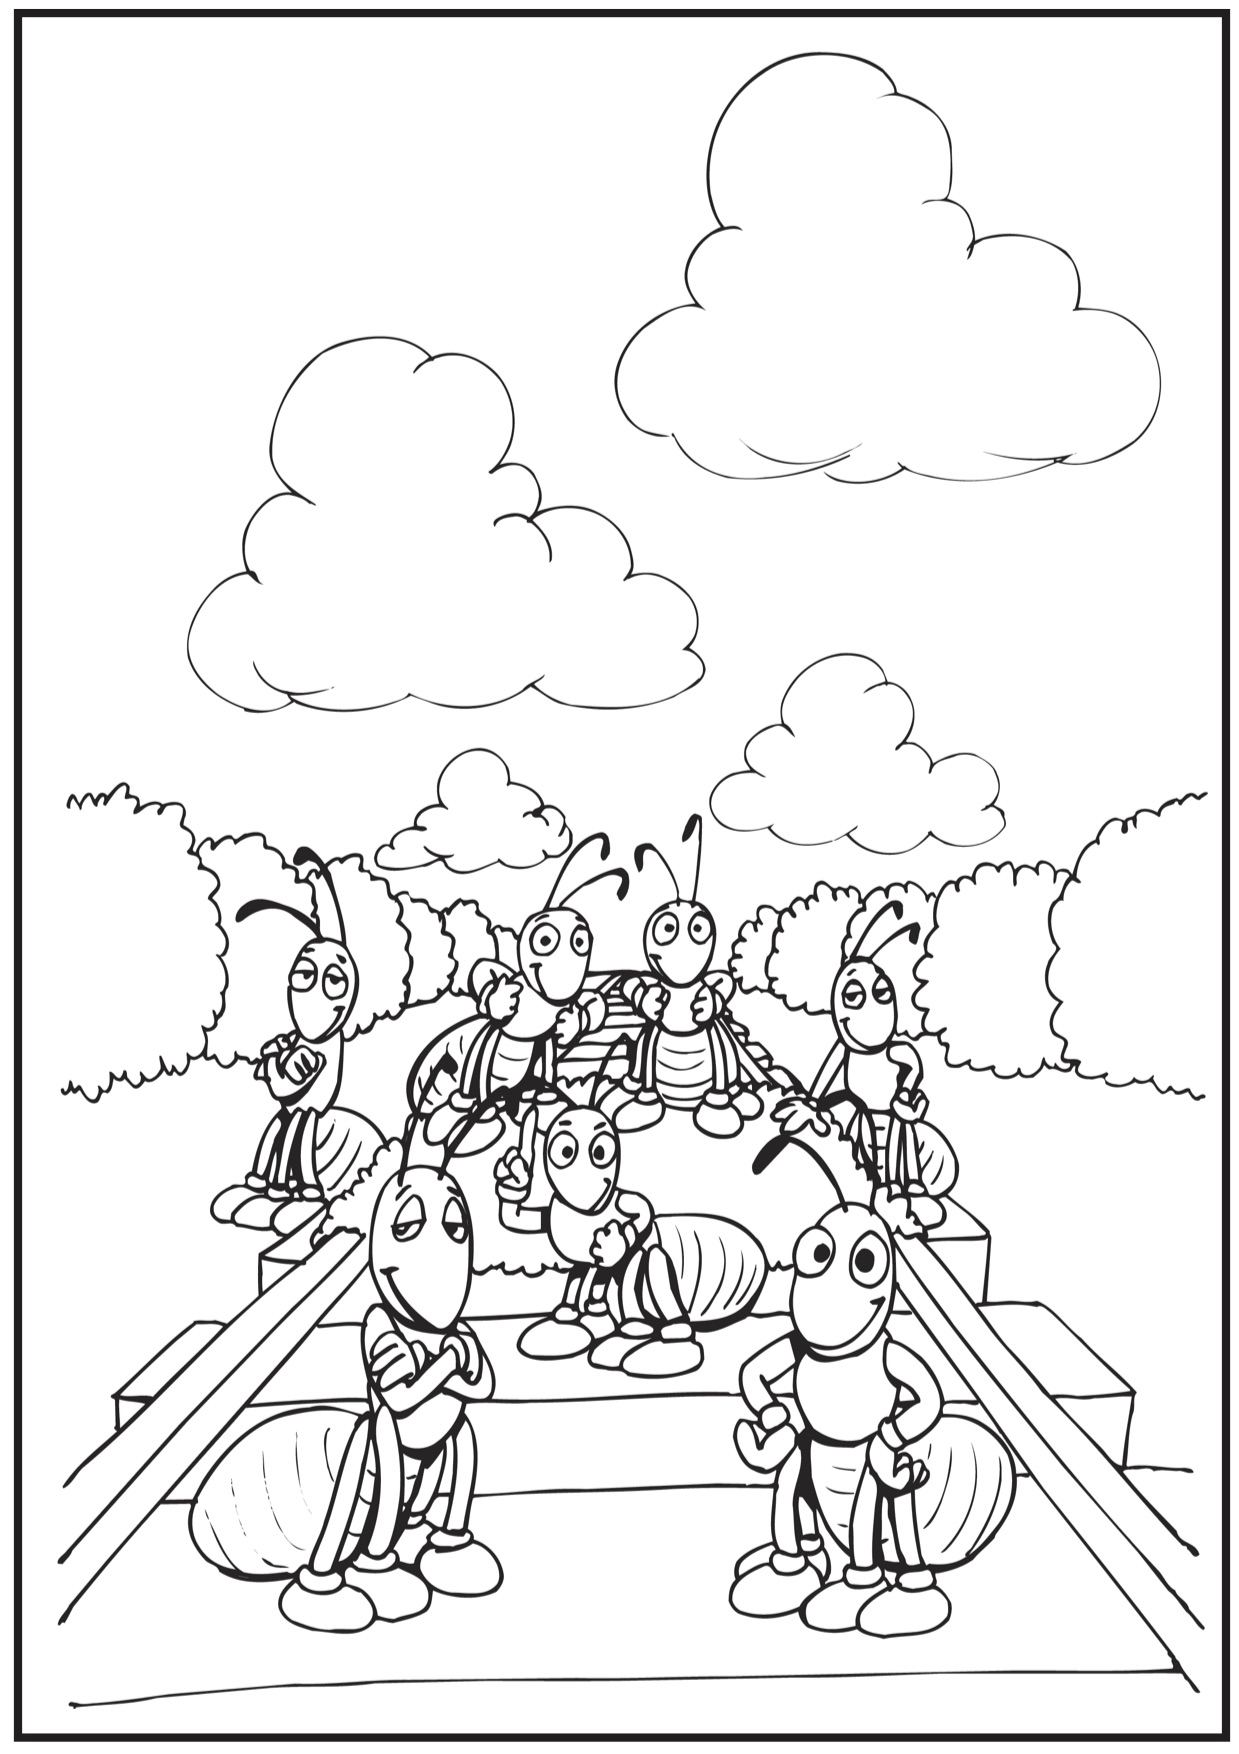 1239x1754 Ant Coloring Pages And Classroom Activities Train Track Coloring